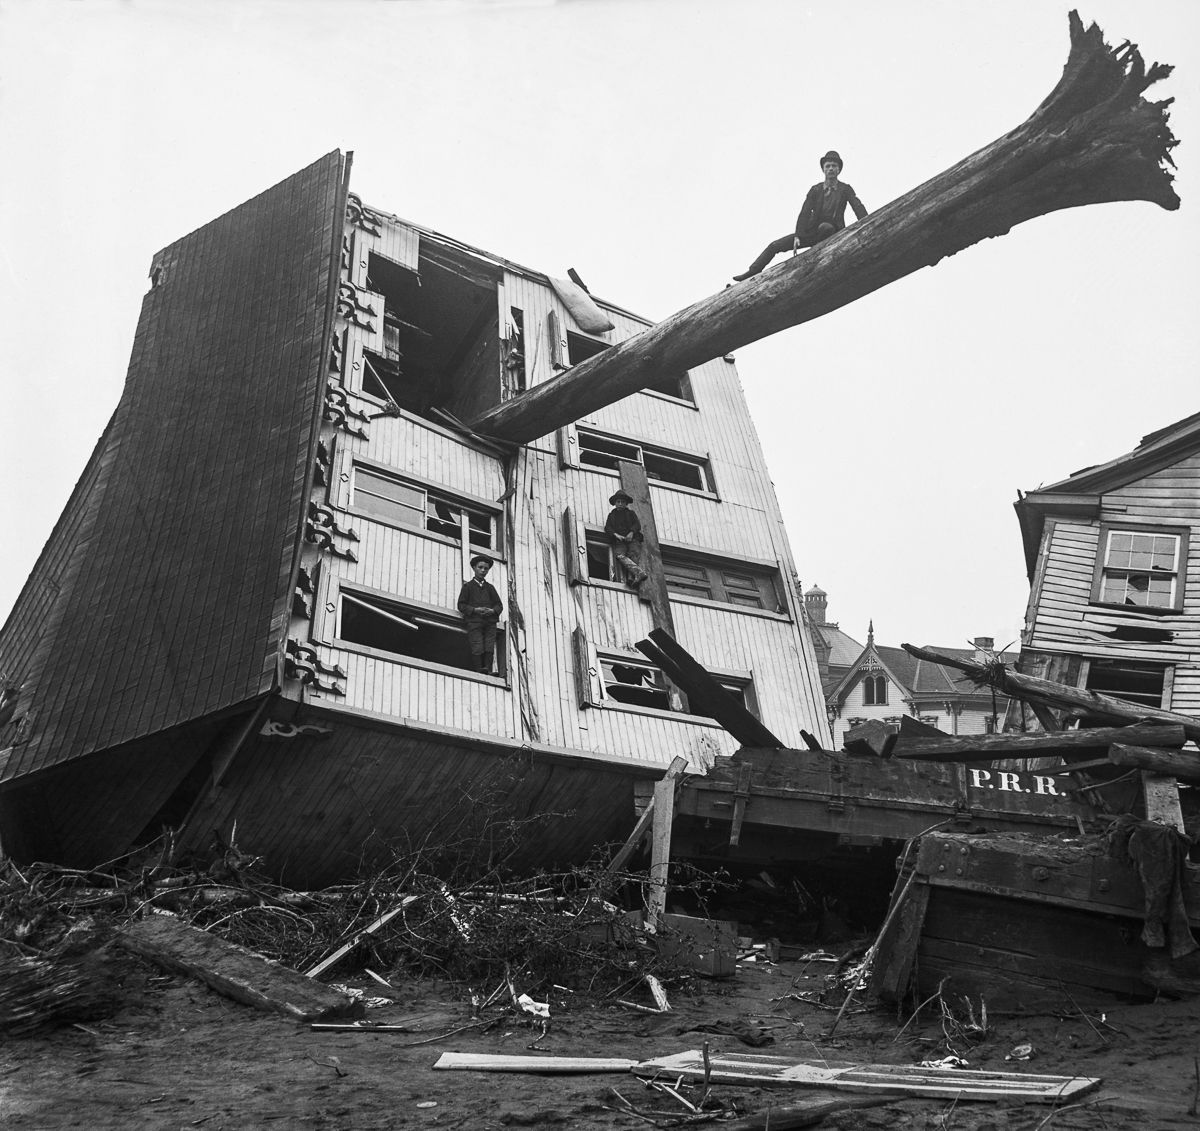 The Devastating 1889 Johnstown Flood Killed Over 2,000 People in Minutes